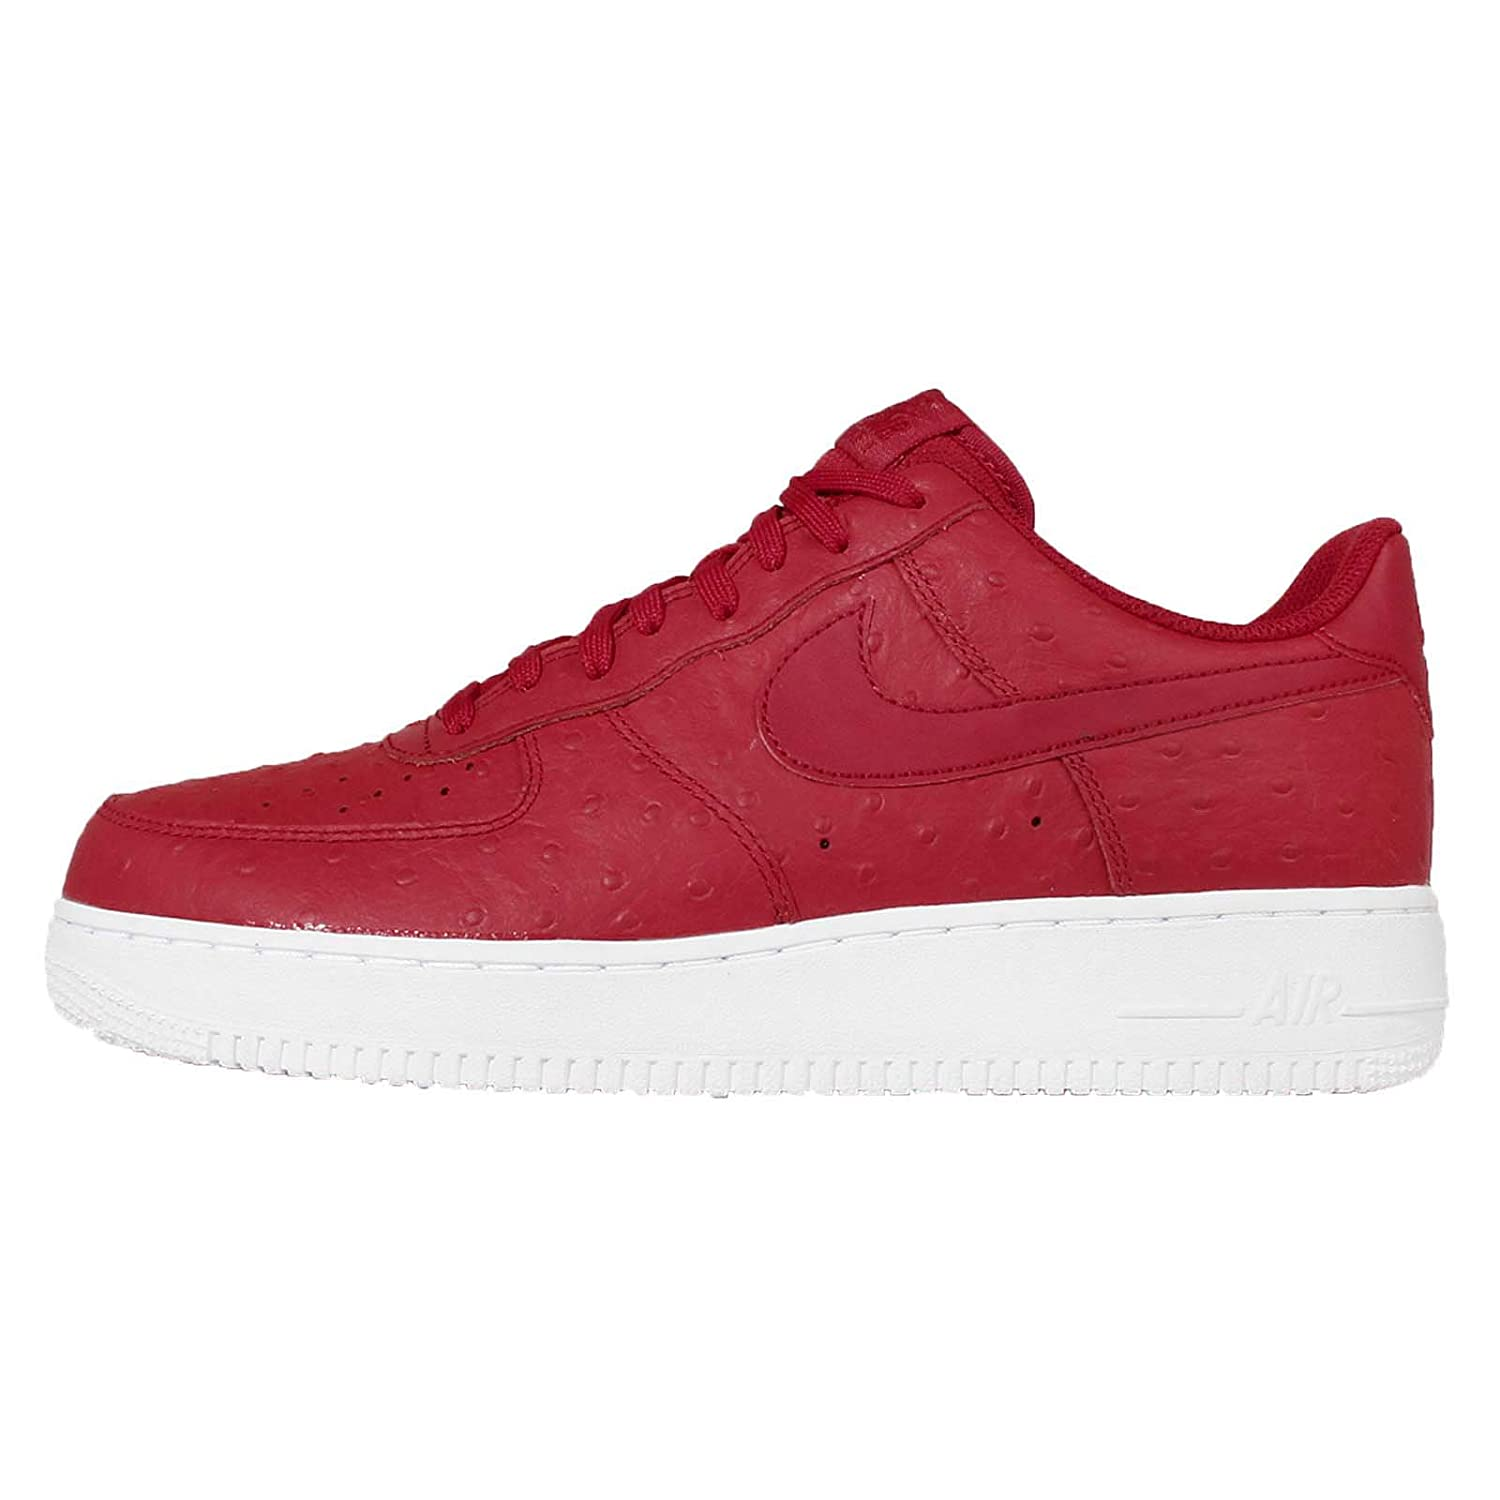 hot sales 0c905 b8267 Amazon.com   Nike Men s Air Force 1 07 LV8, GYM RED GYM RED-WHITE, 11.5 M  US   Shoes